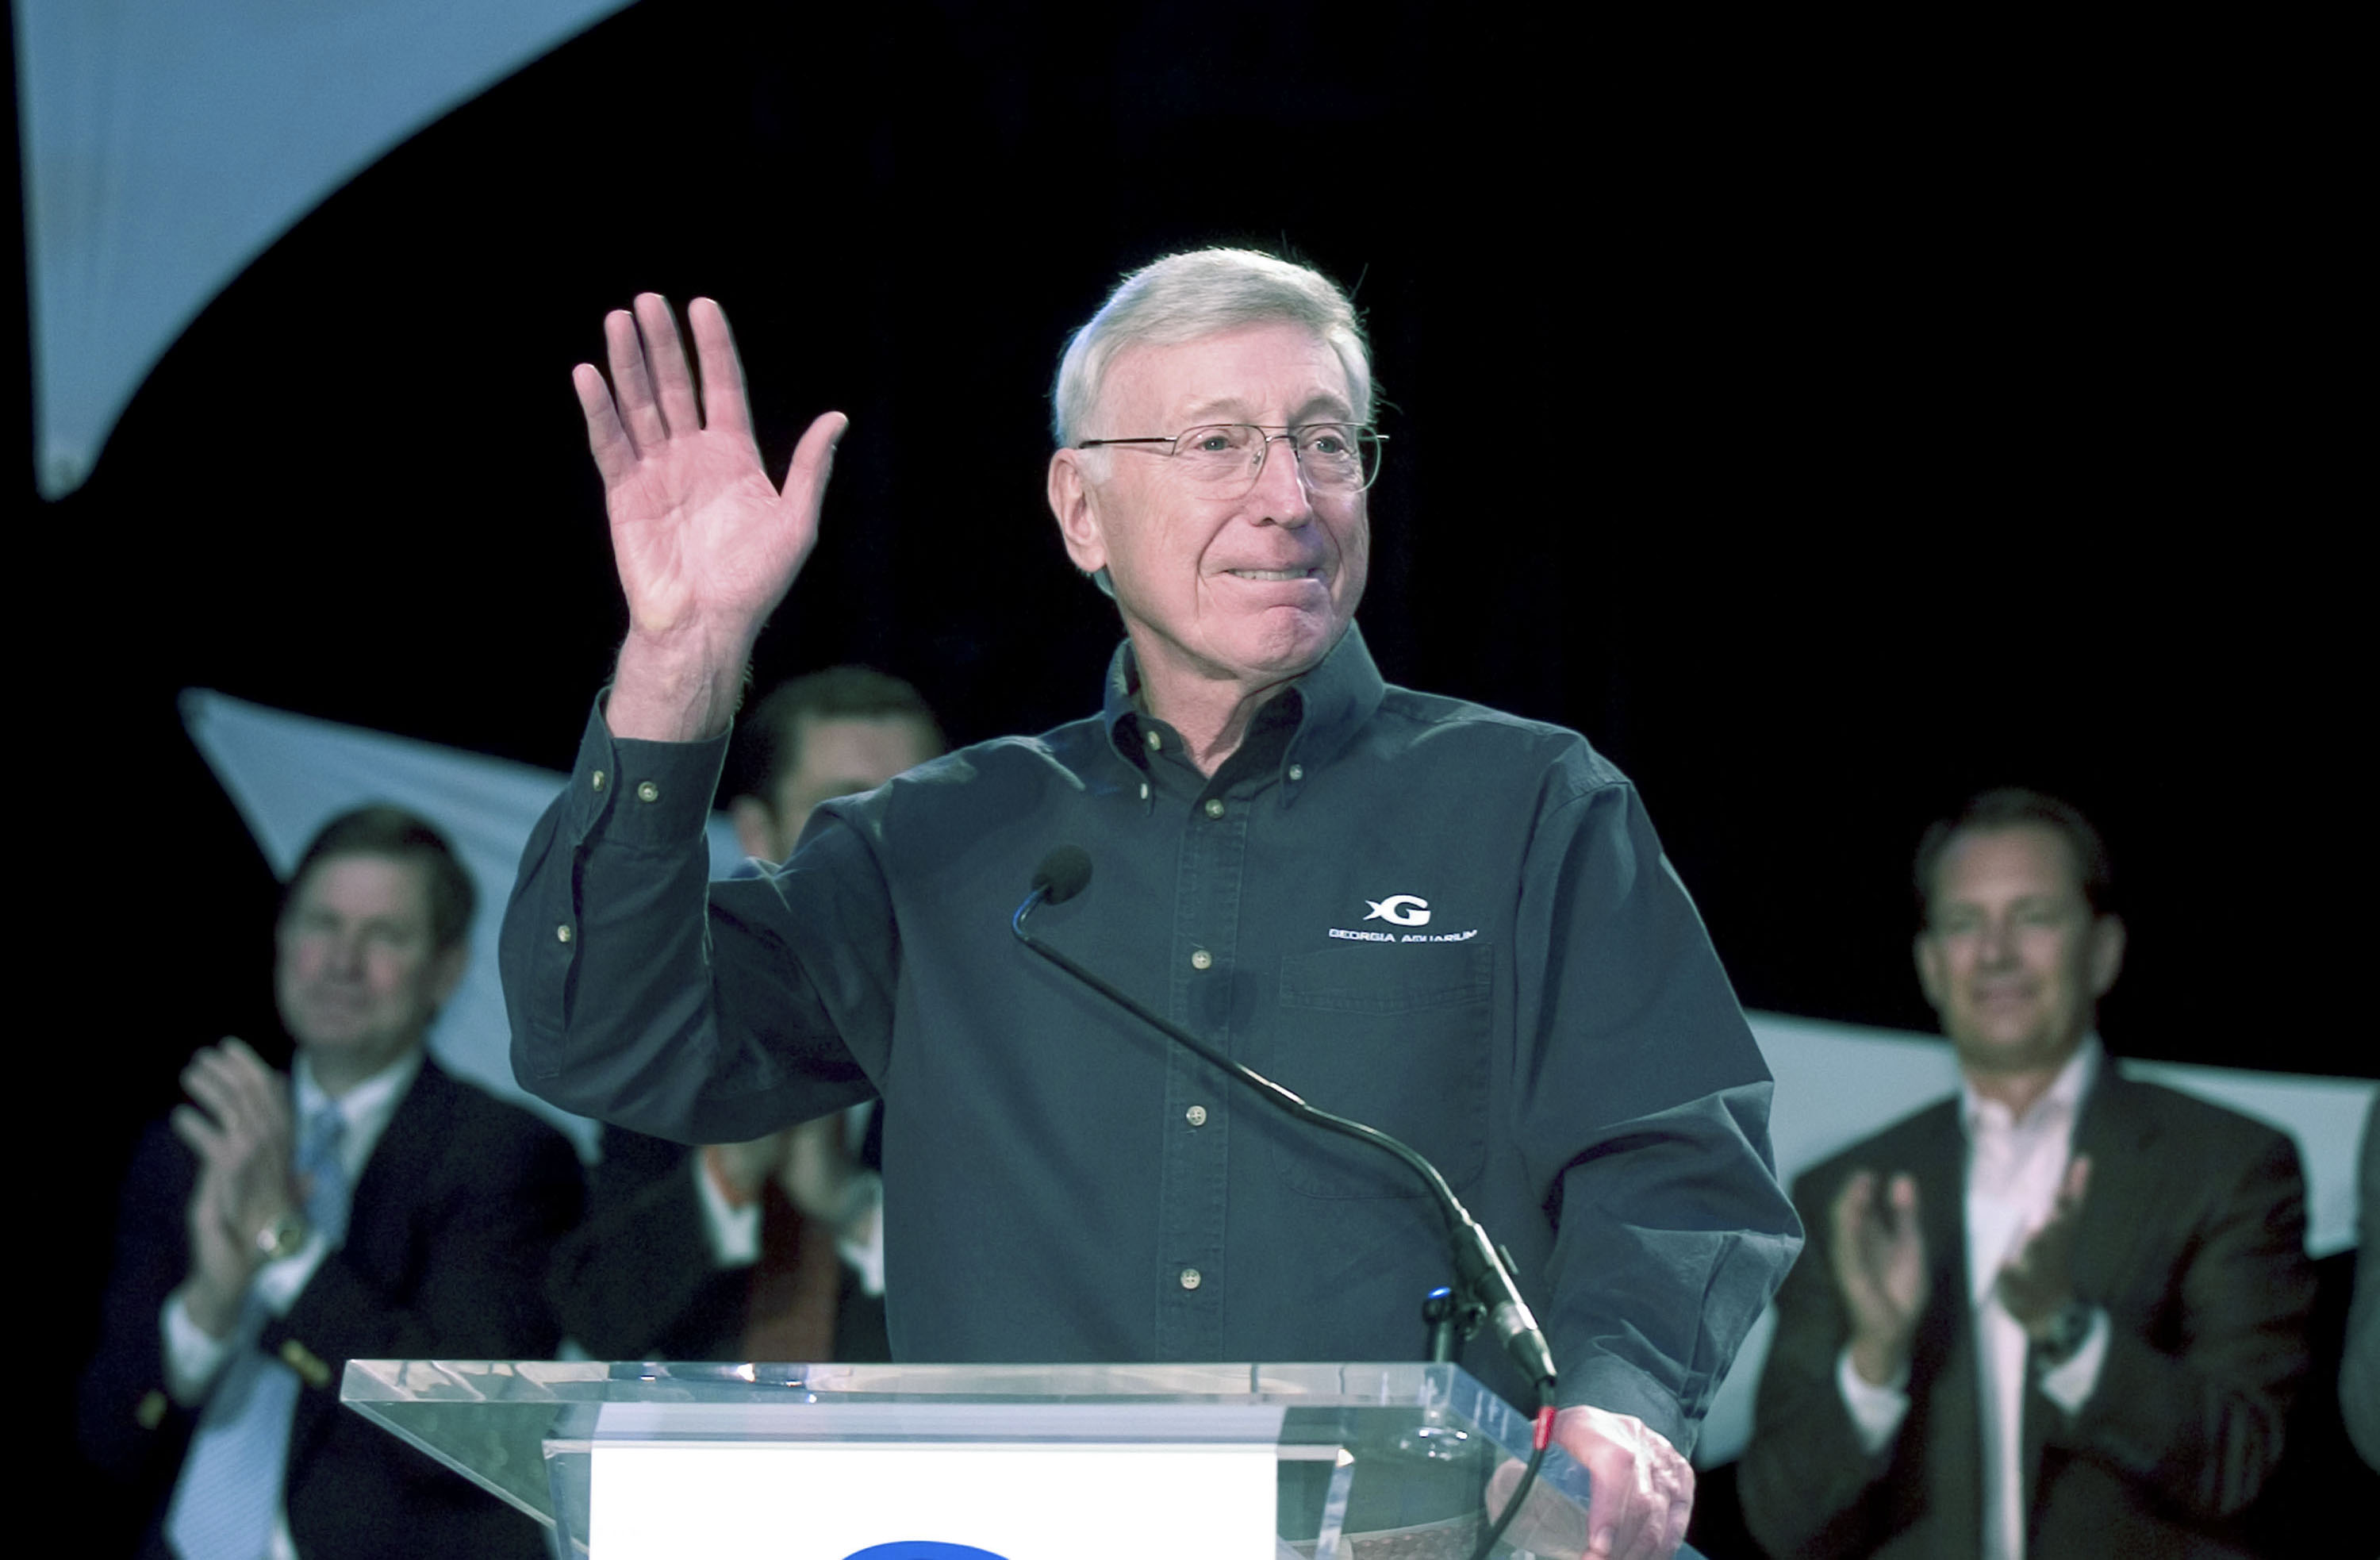 Home Depot co-founder Bernie Marcus speaks prior to a ribbon cutting ceremony at the Georgia Aquarium November 19, 2005 in Atlanta, Goergia. (Barry Williams/Getty Images)